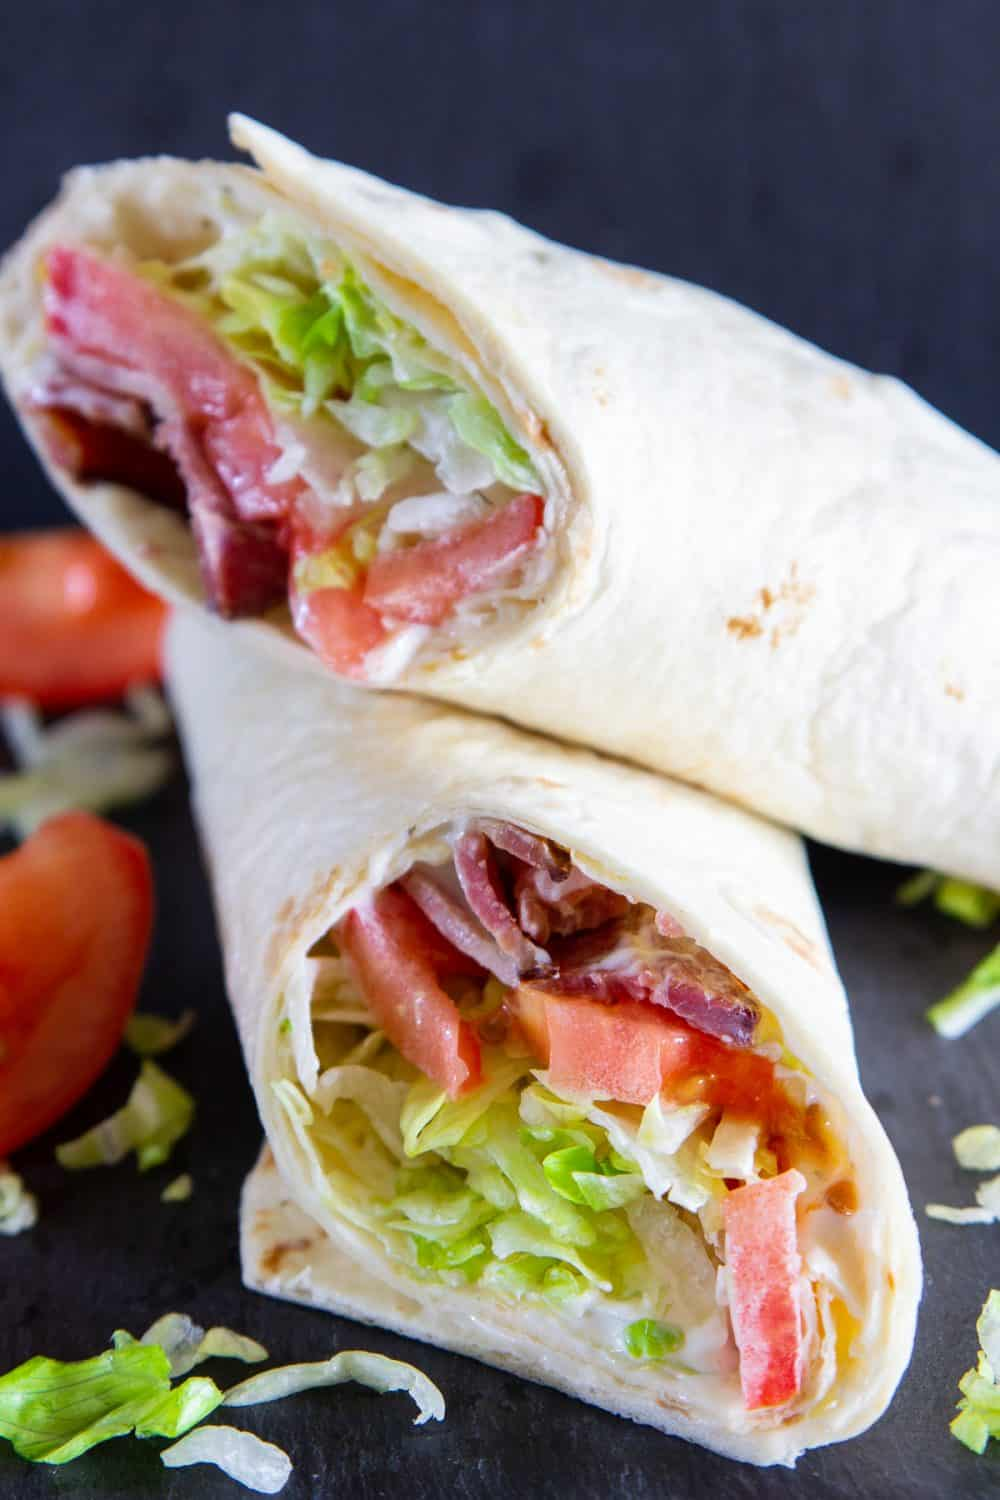 Close up of BLT wrap cut in half and stacked with shredded lettuce and sliced tomatoes on a dark background.